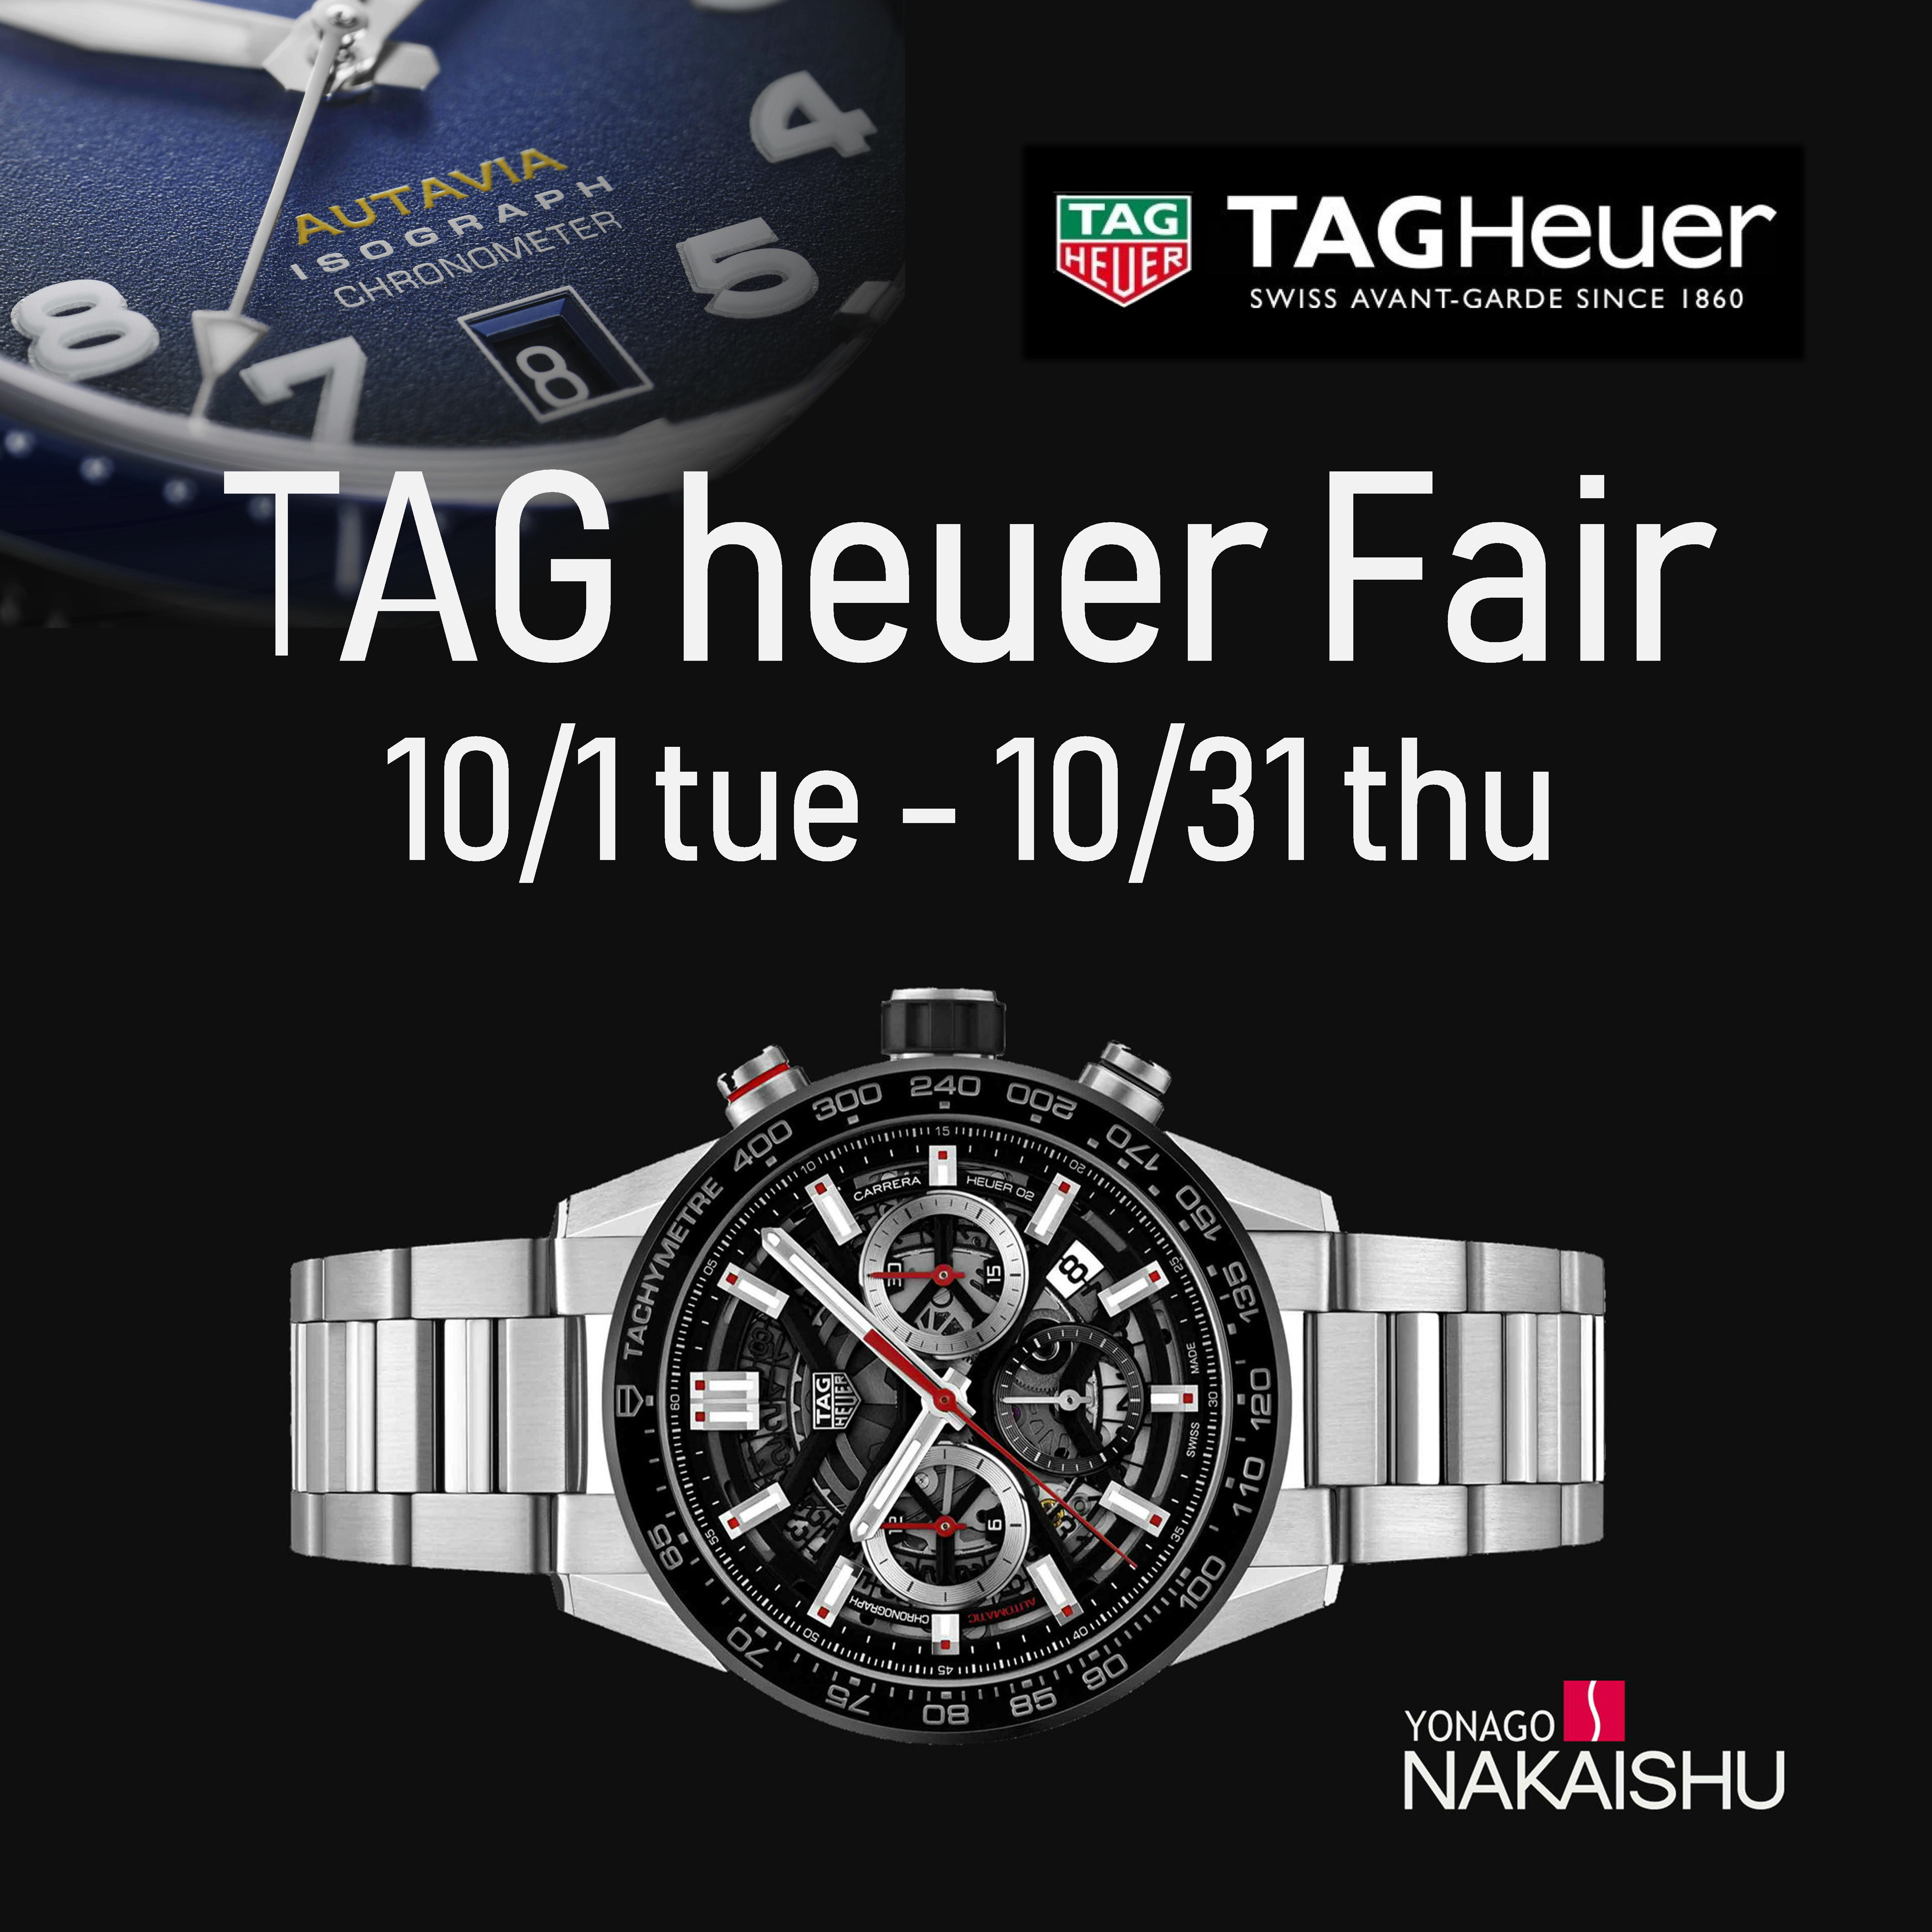 TAG Heuer Fair 10/1tue-10/31thu